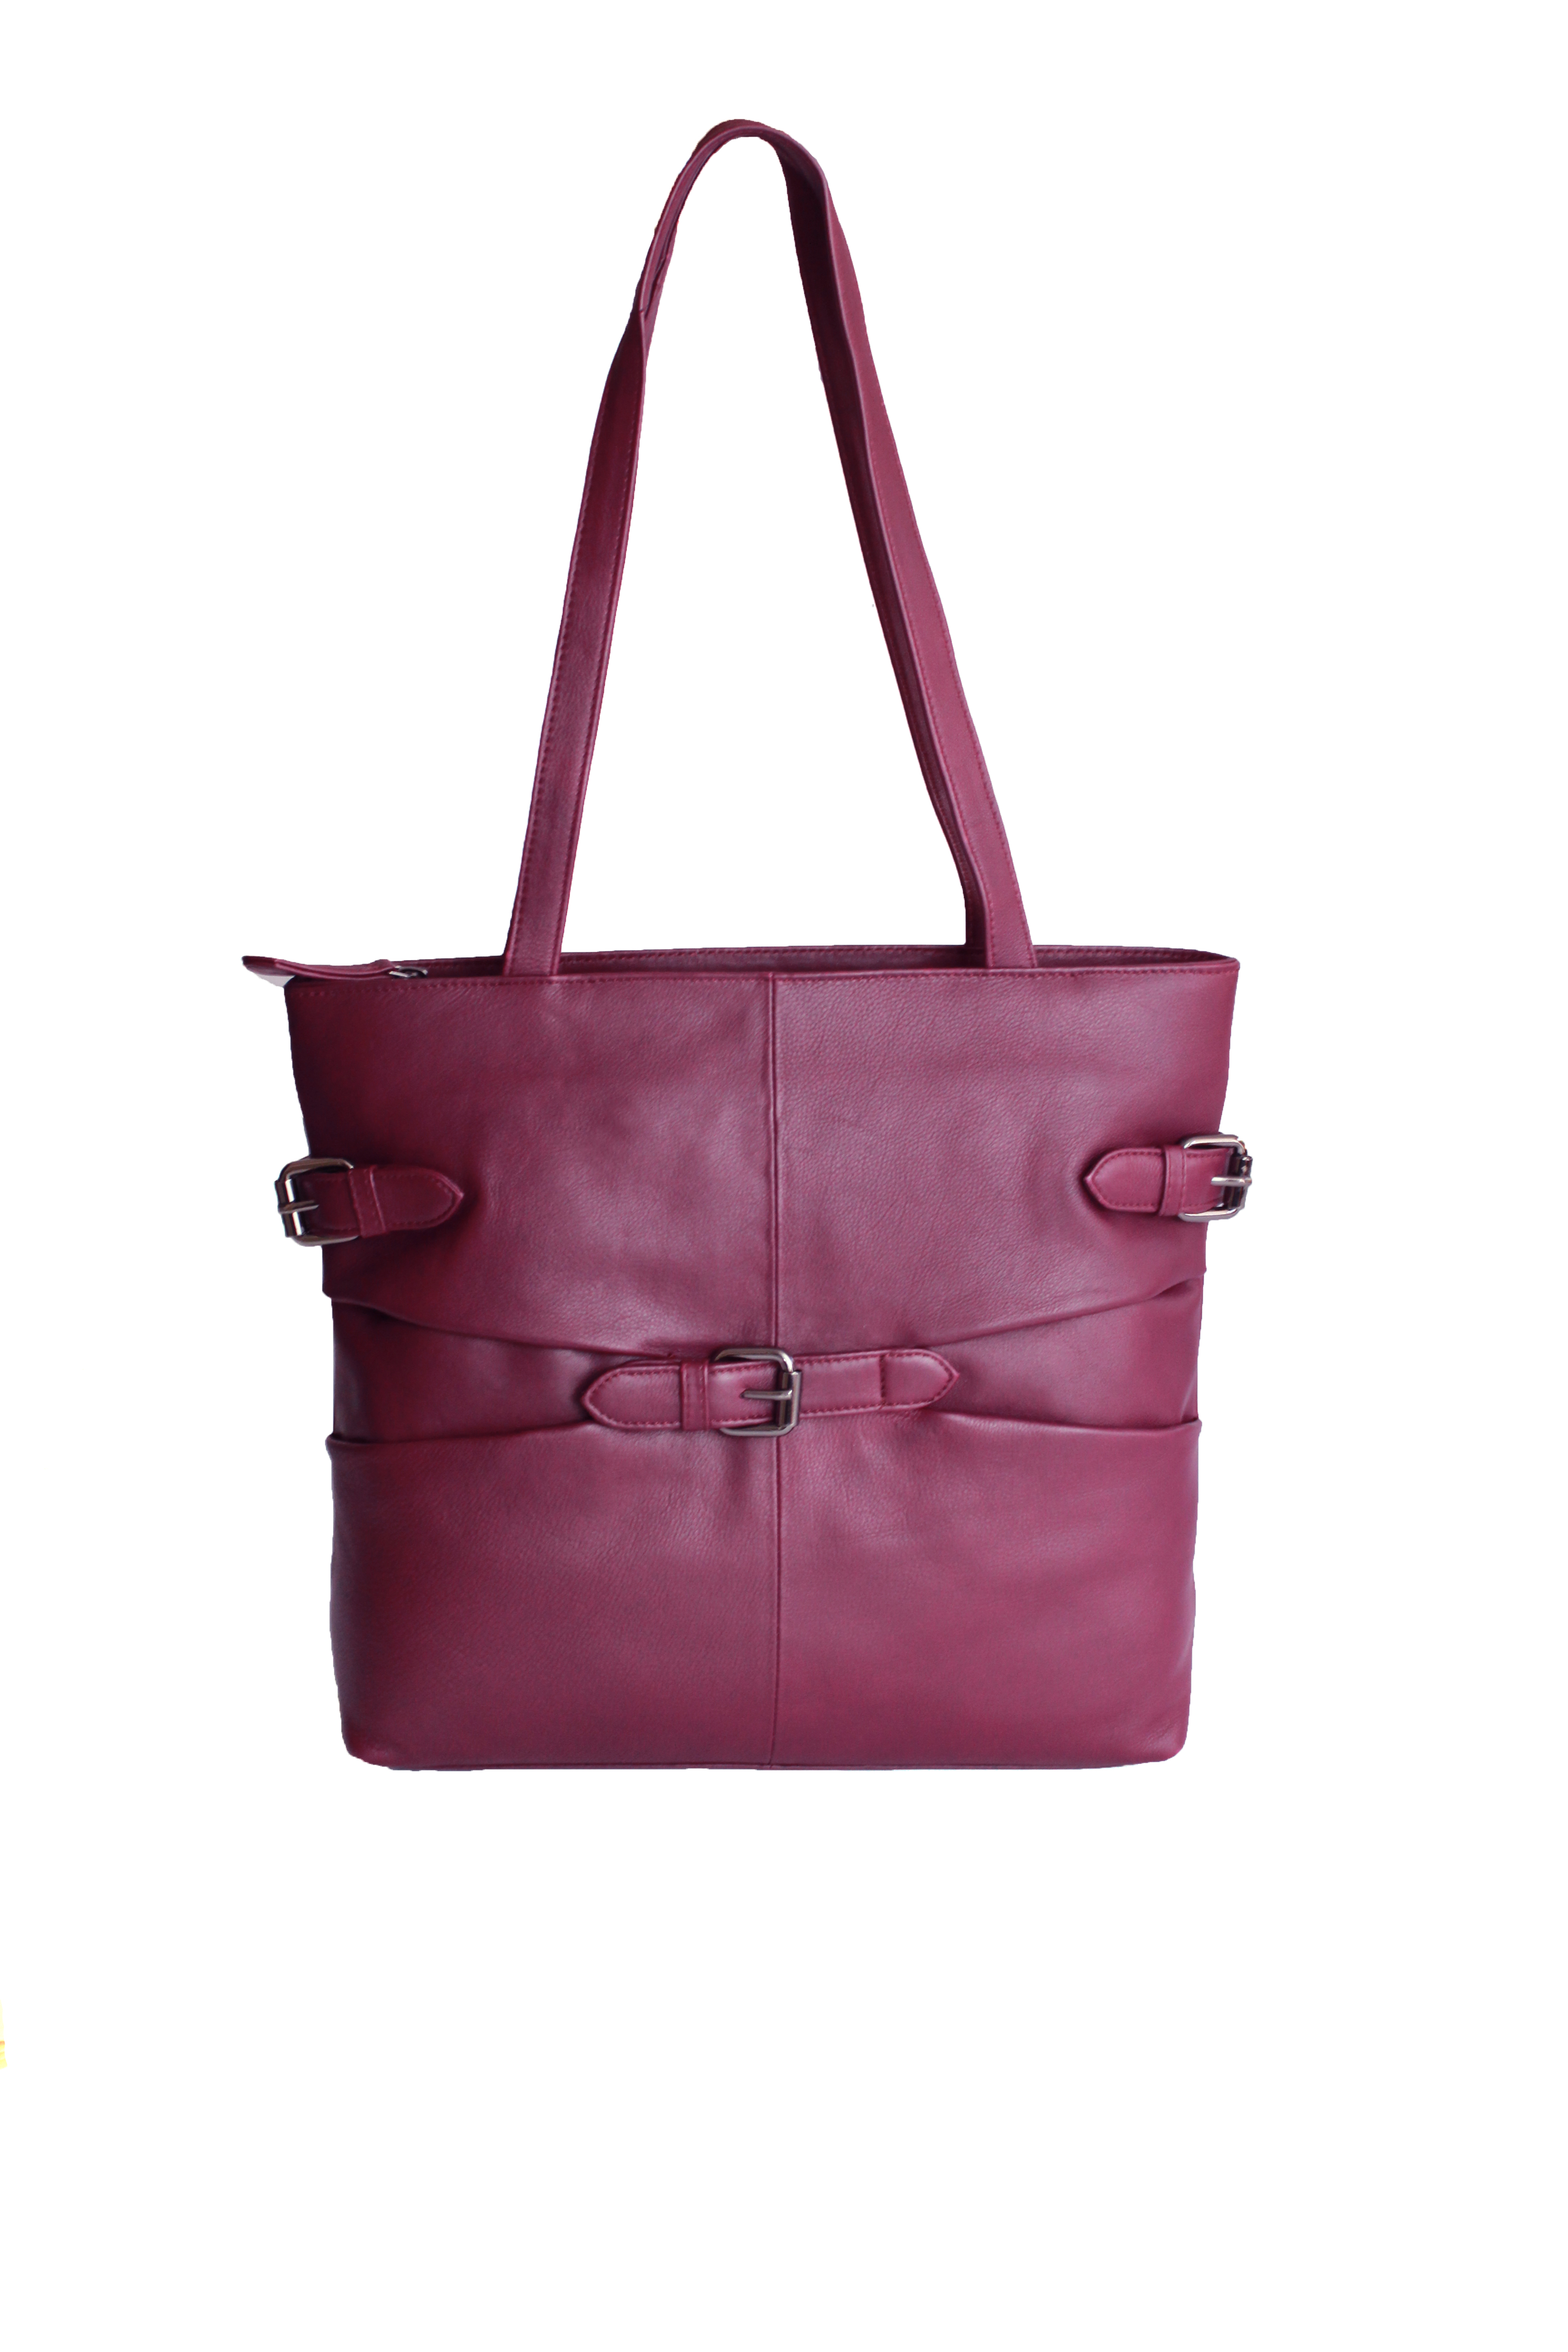 Jill handbag – more colours